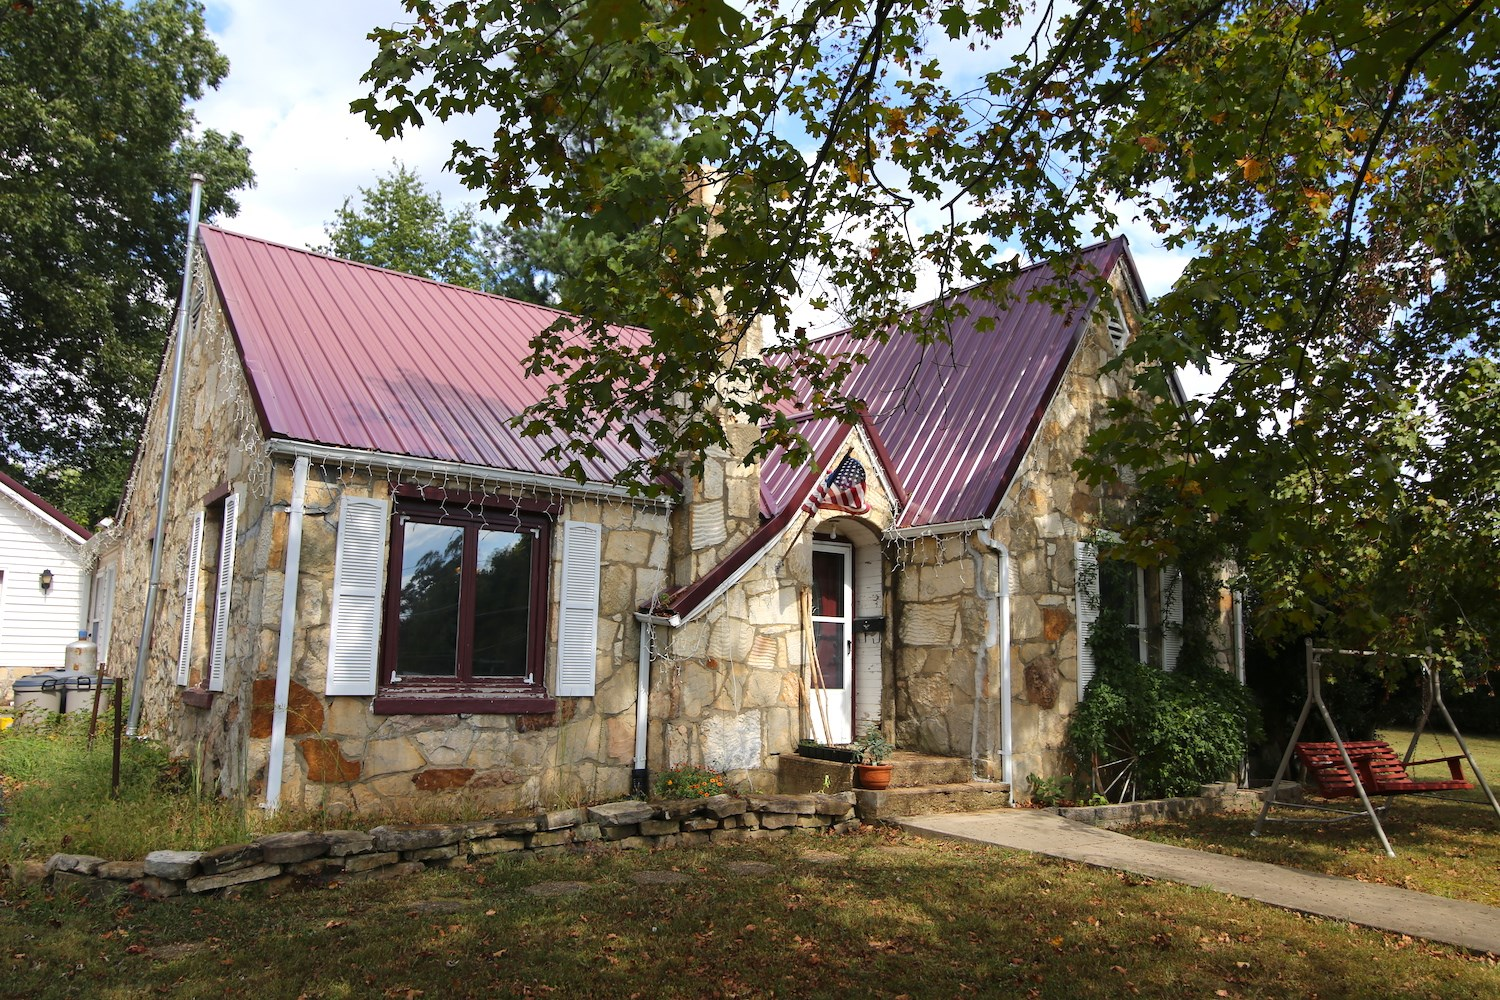 Native Stone Home for Sale in Thayer, MO